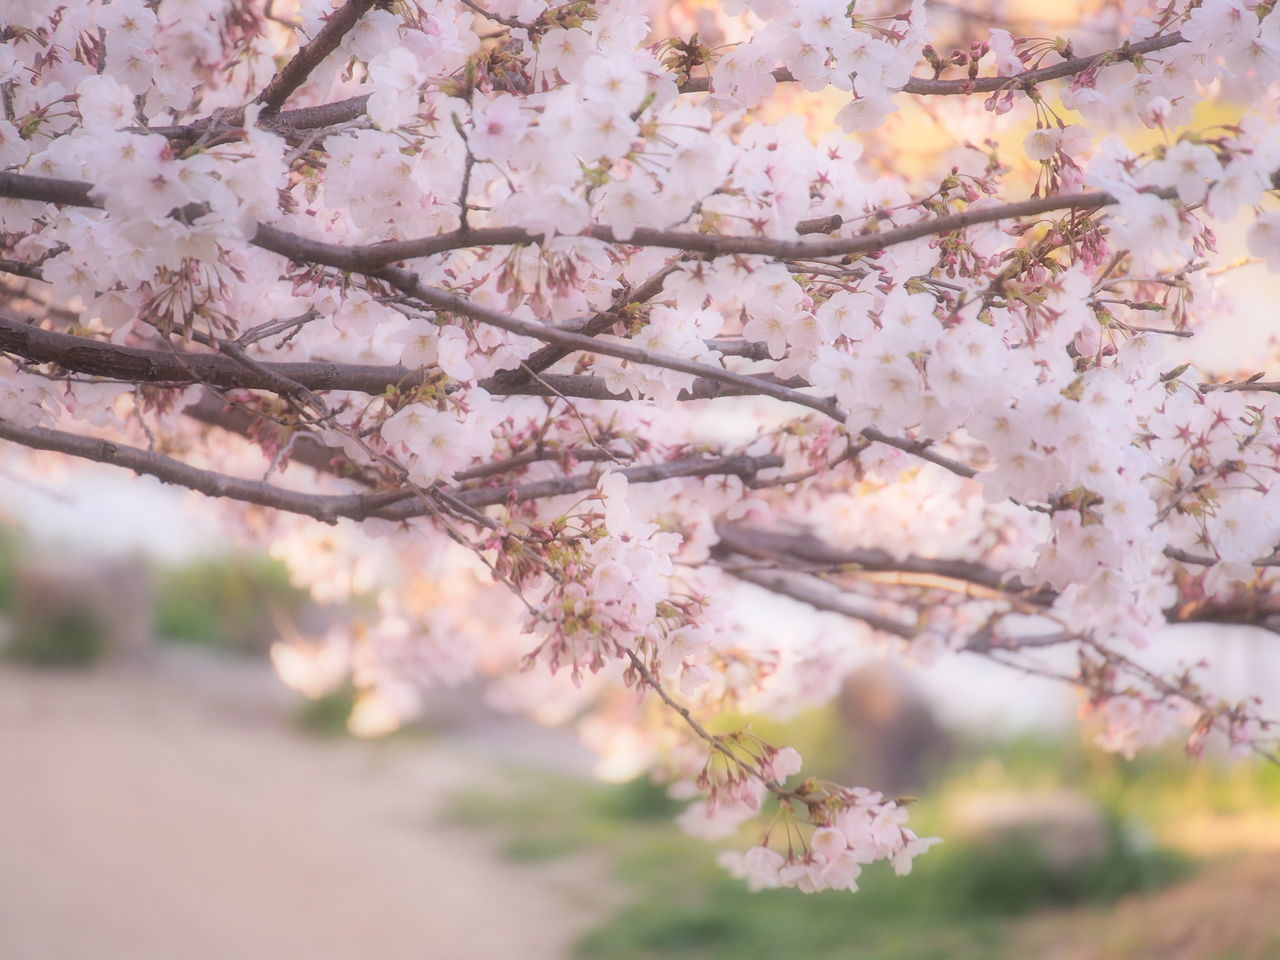 flower, blossom, tree, springtime, cherry blossom, fragility, cherry tree, beauty in nature, freshness, branch, growth, apple blossom, nature, apple tree, orchard, pink color, botany, selective focus, day, white color, no people, outdoors, close-up, flower head